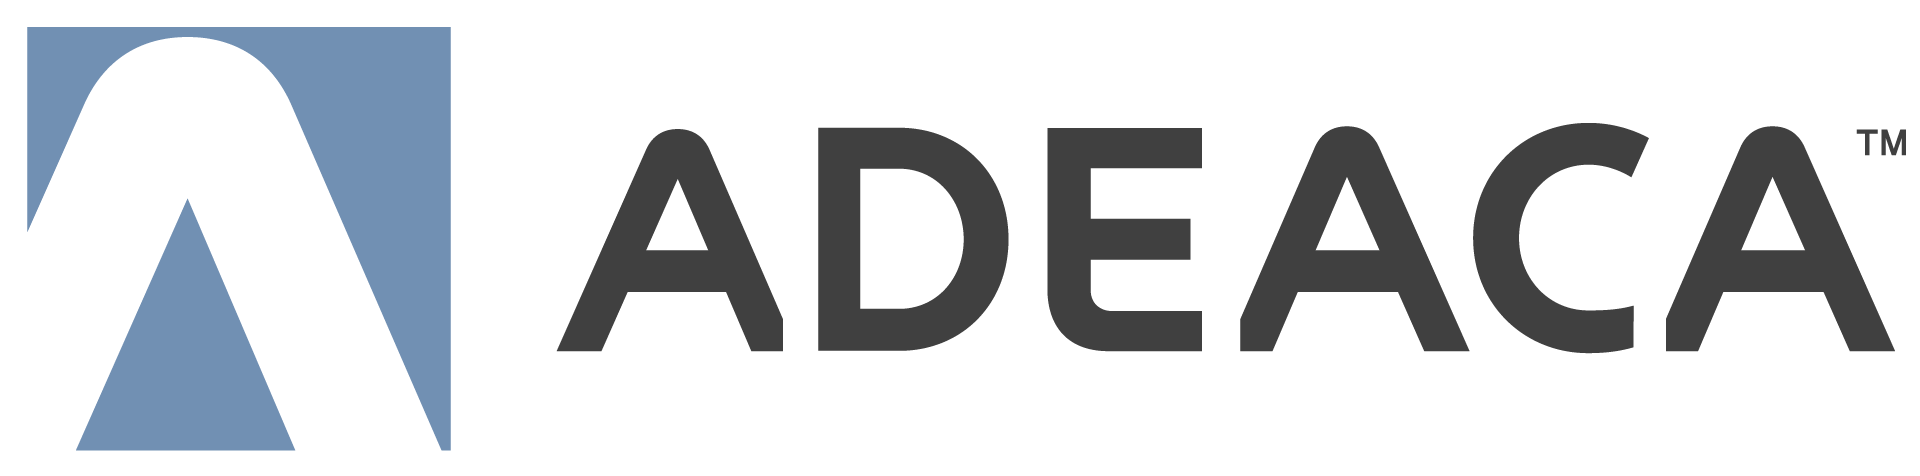 Project Based Companies Are Different According to Adeaca